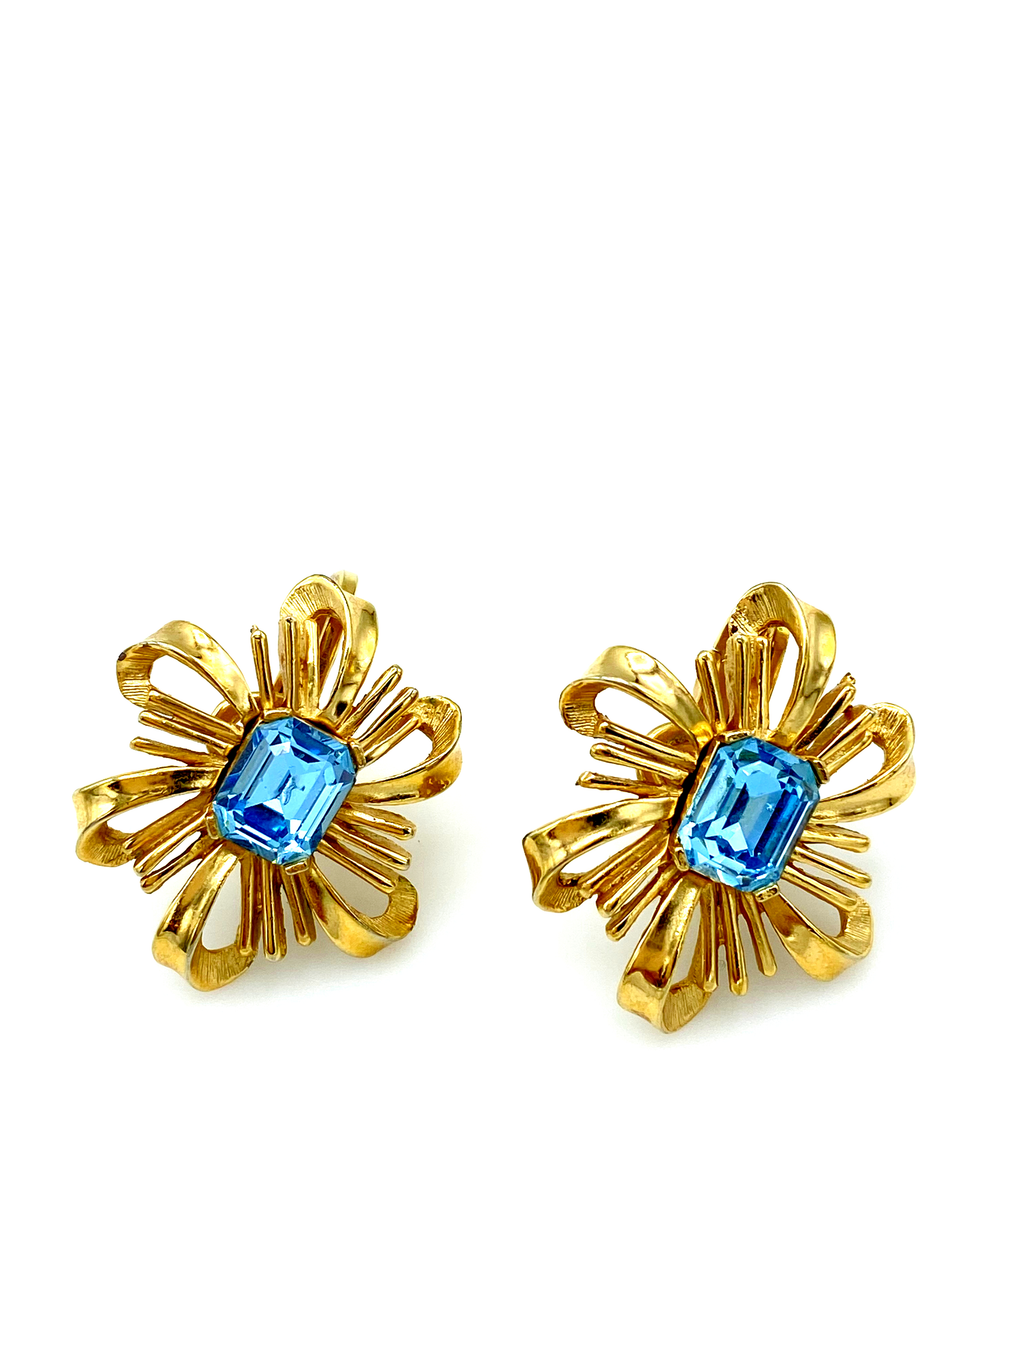 Crown Trifari Aquamarine Blue Rhinestone Bow Vintage Earrings-Sustainable Fashion with Vintage Style-Trending Designer Fashion-24 Wishes